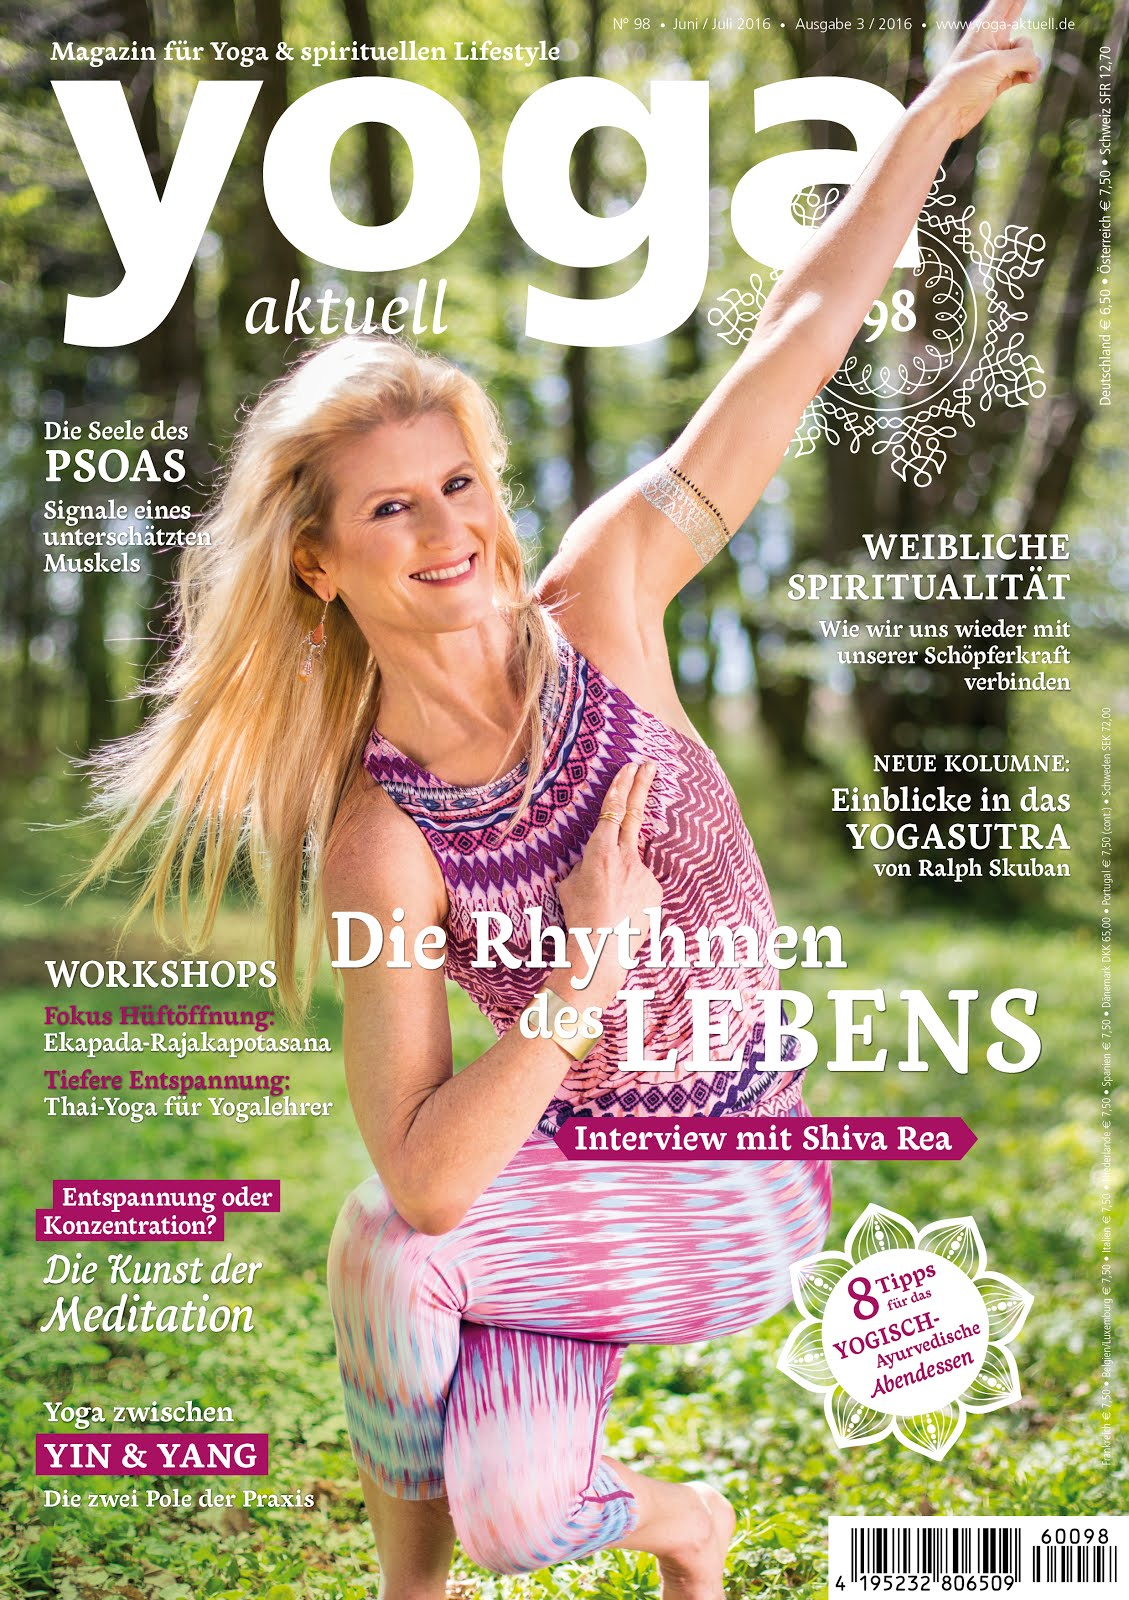 Read My Recent Articles<br>Die Seele das Psoas<br>Yoga Aktuell 98<br>June-July 2016